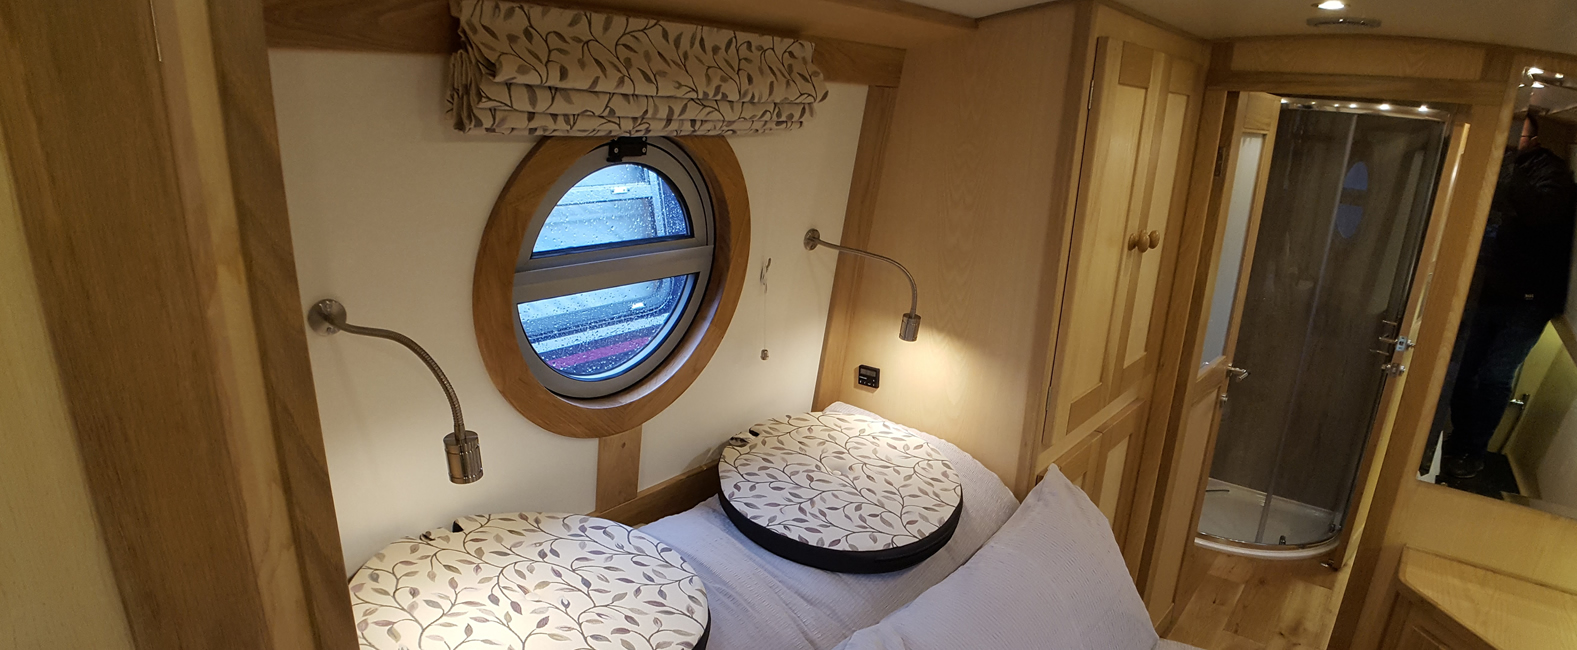 Porthole window dressings